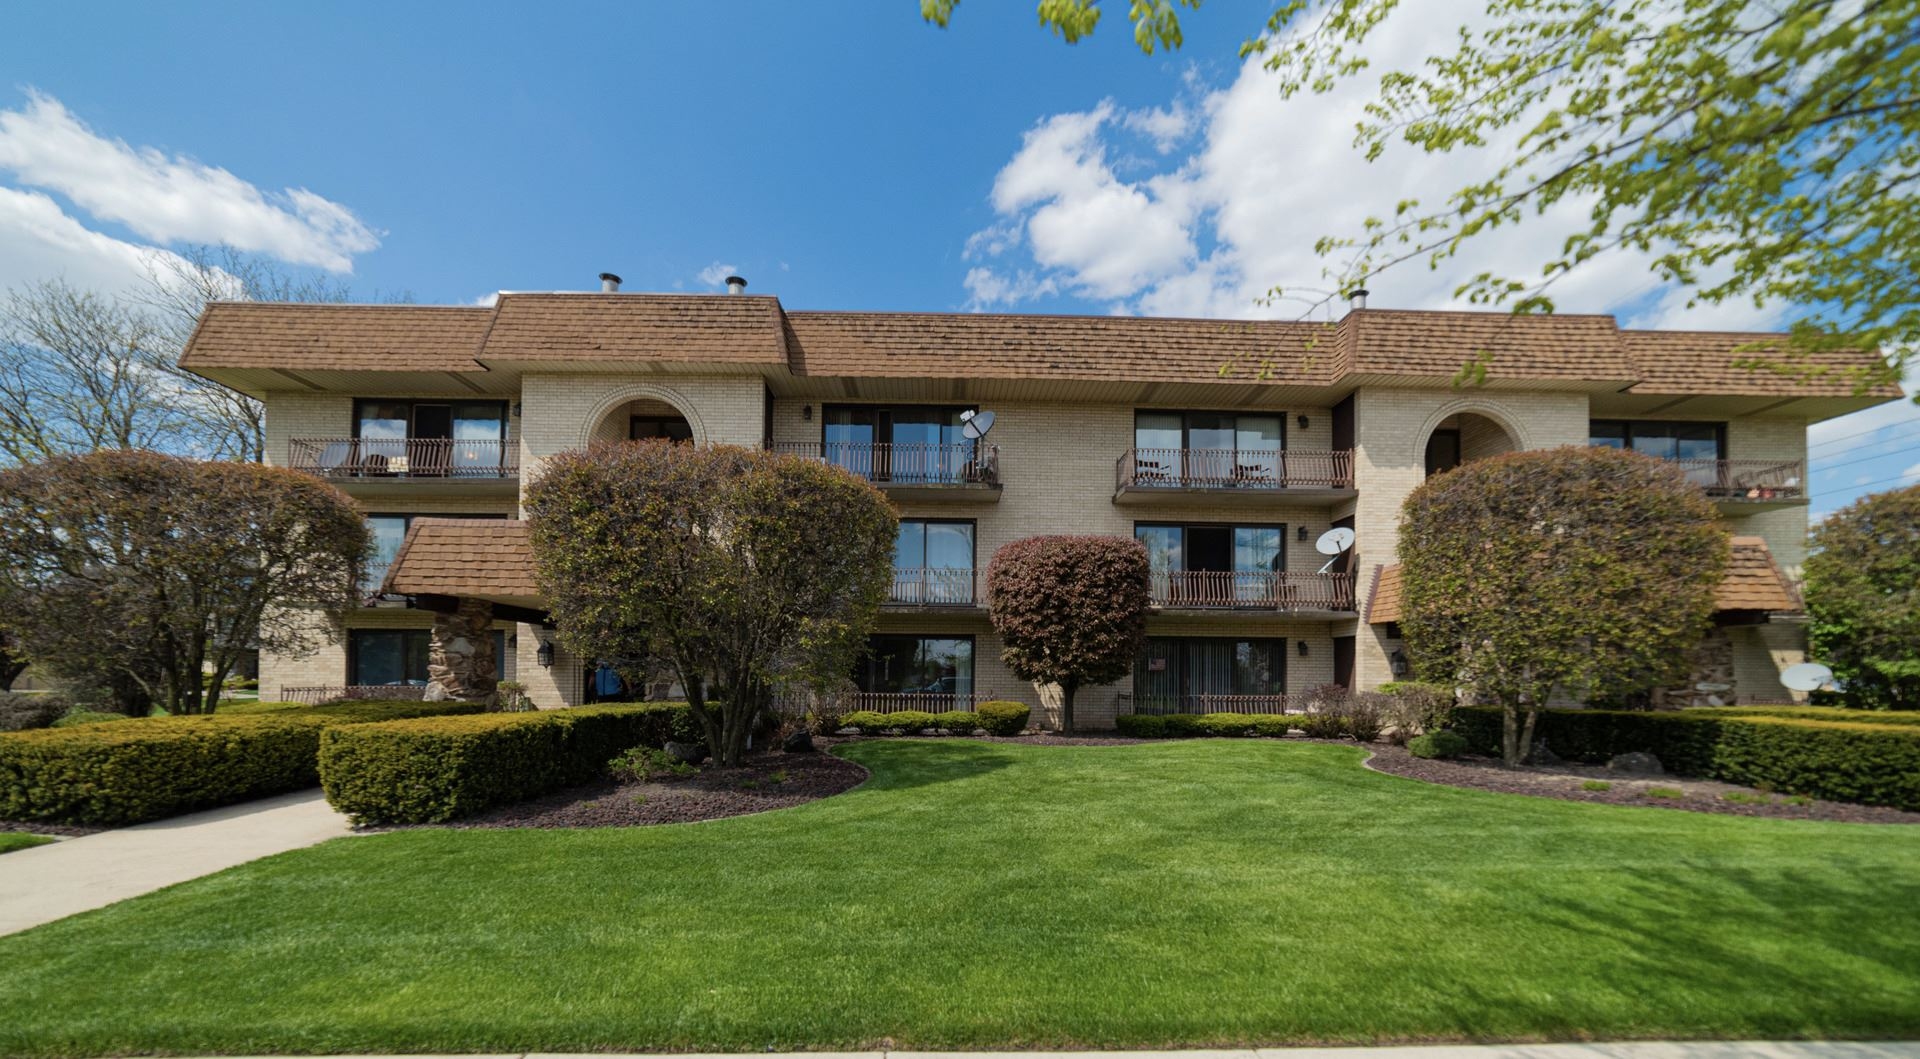 7426 W 153rd Street #1, Orland Park, IL 60462 - #: 10669275